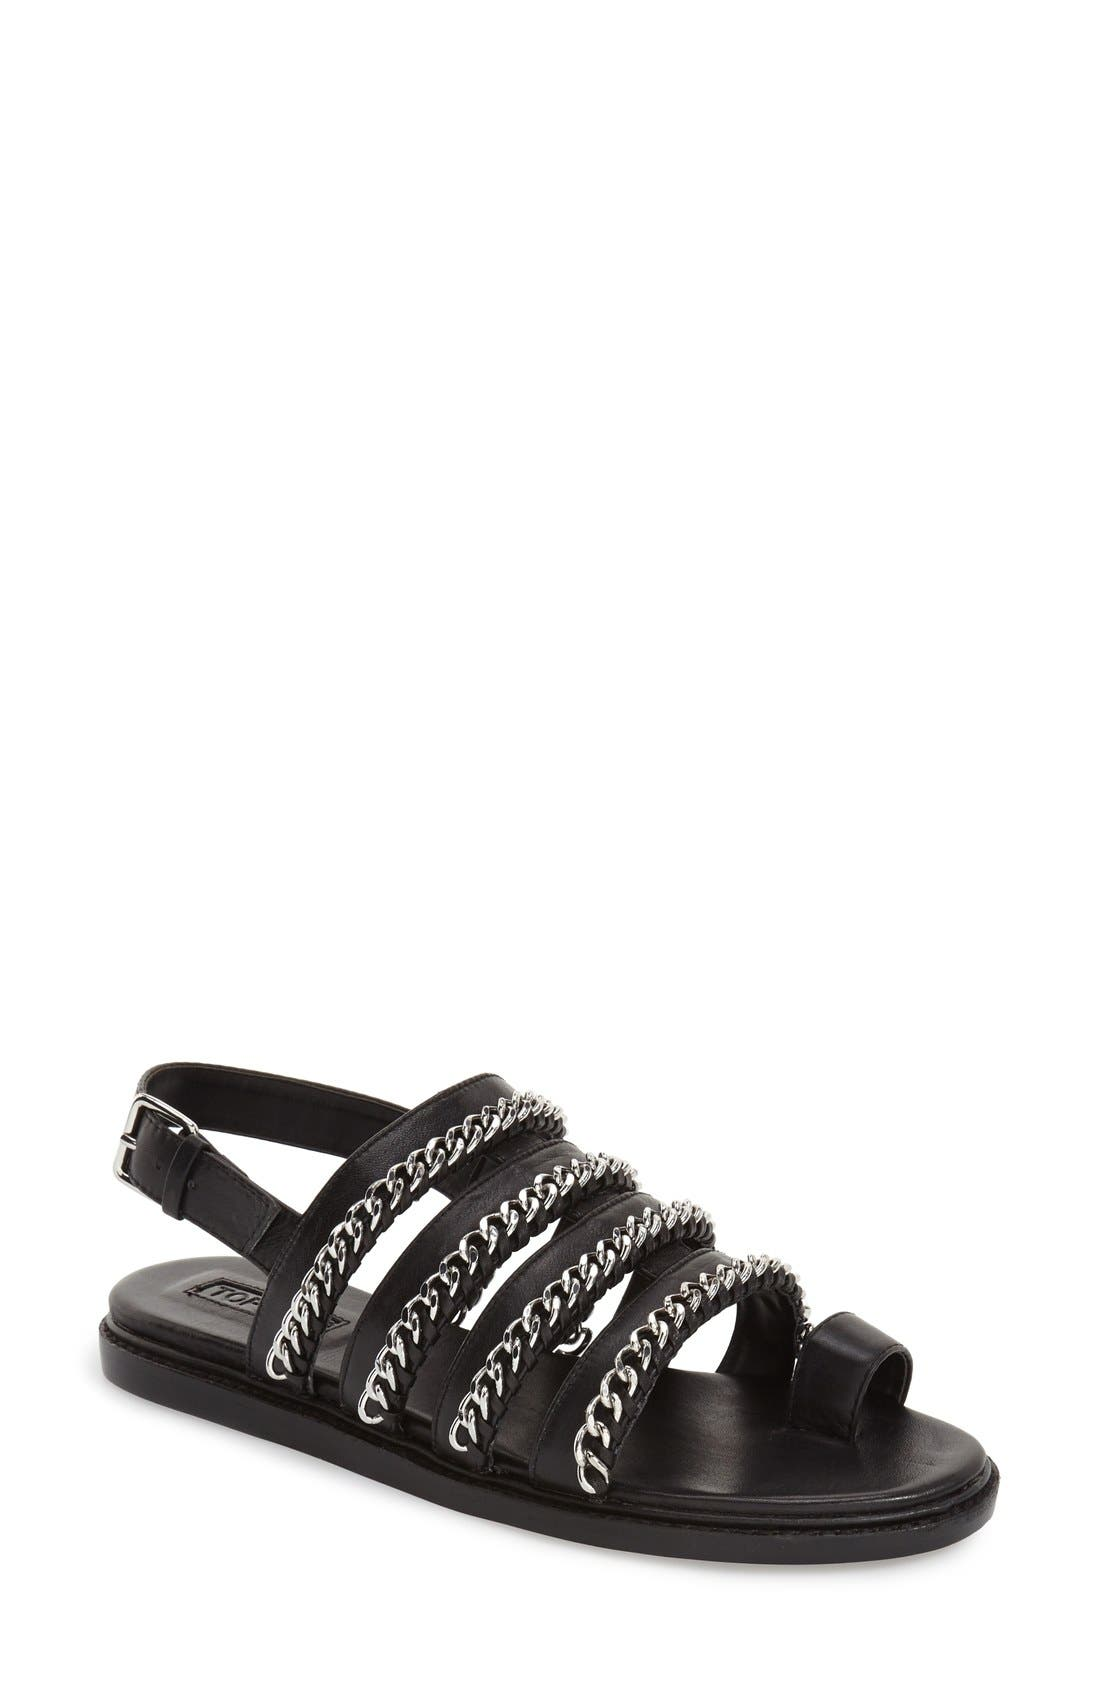 Main Image - Topshop 'Flying' Chain Strap Sandal (Women)